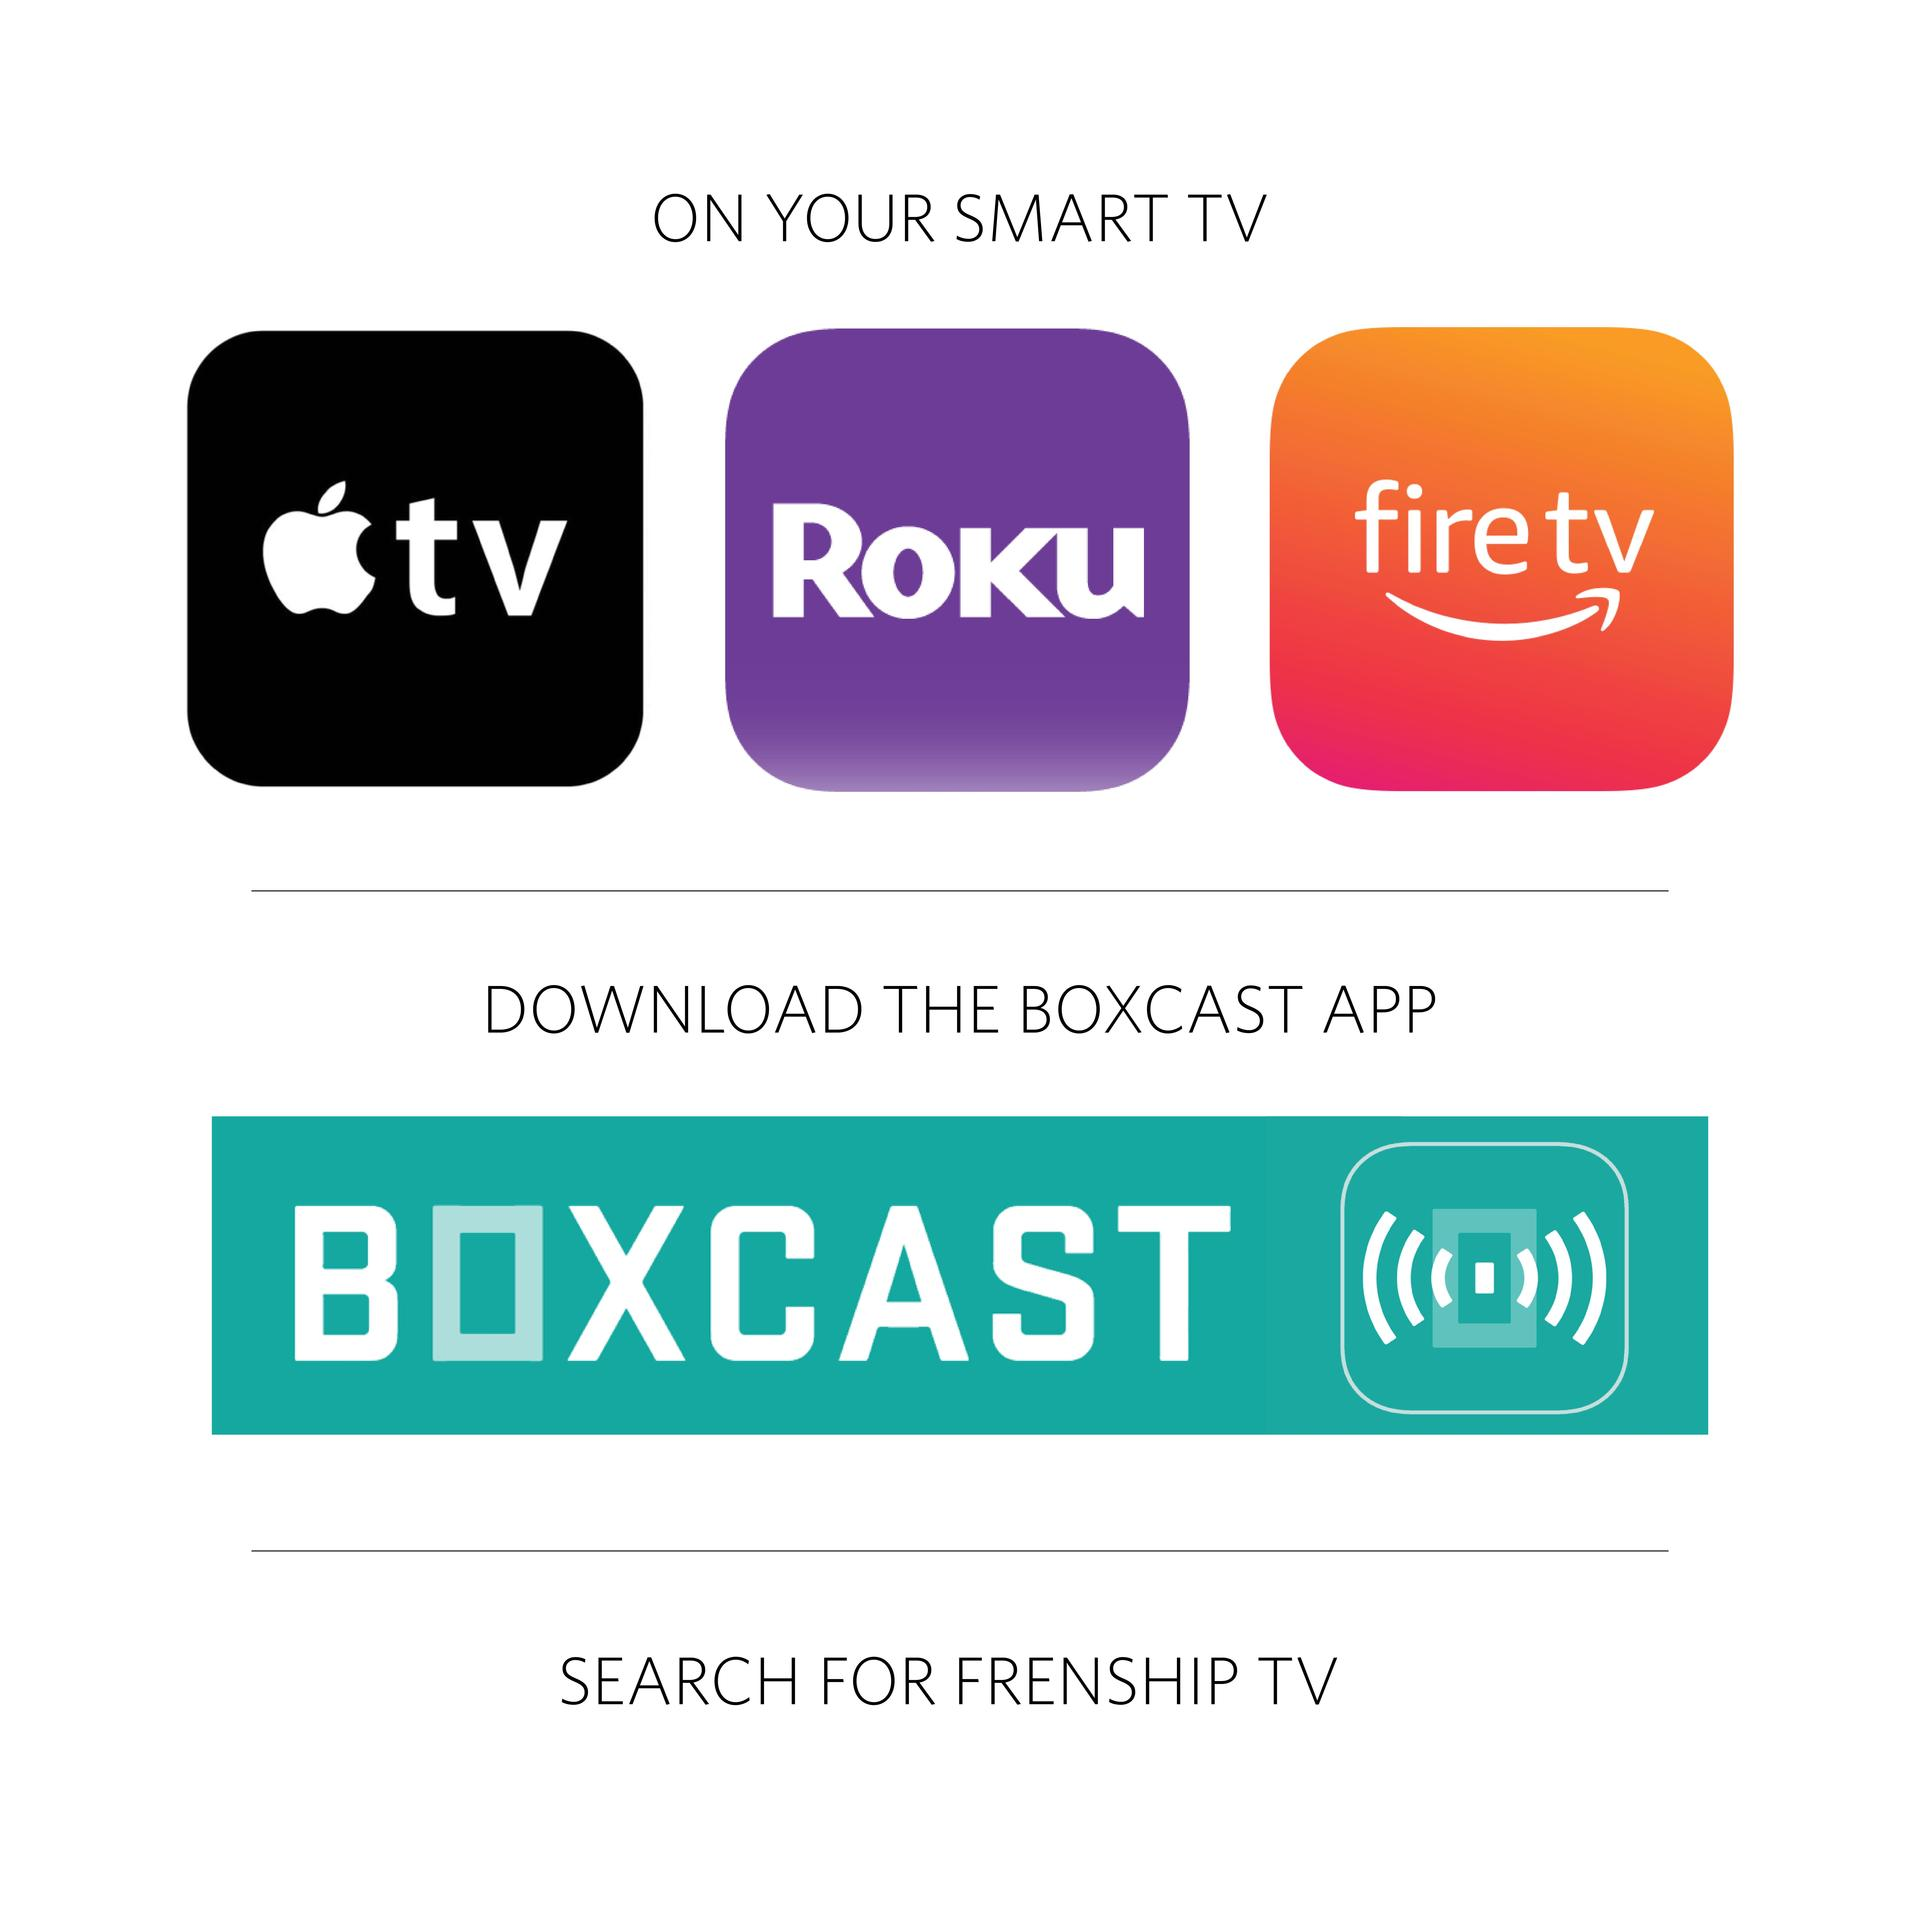 watch on smart tv through boxcast